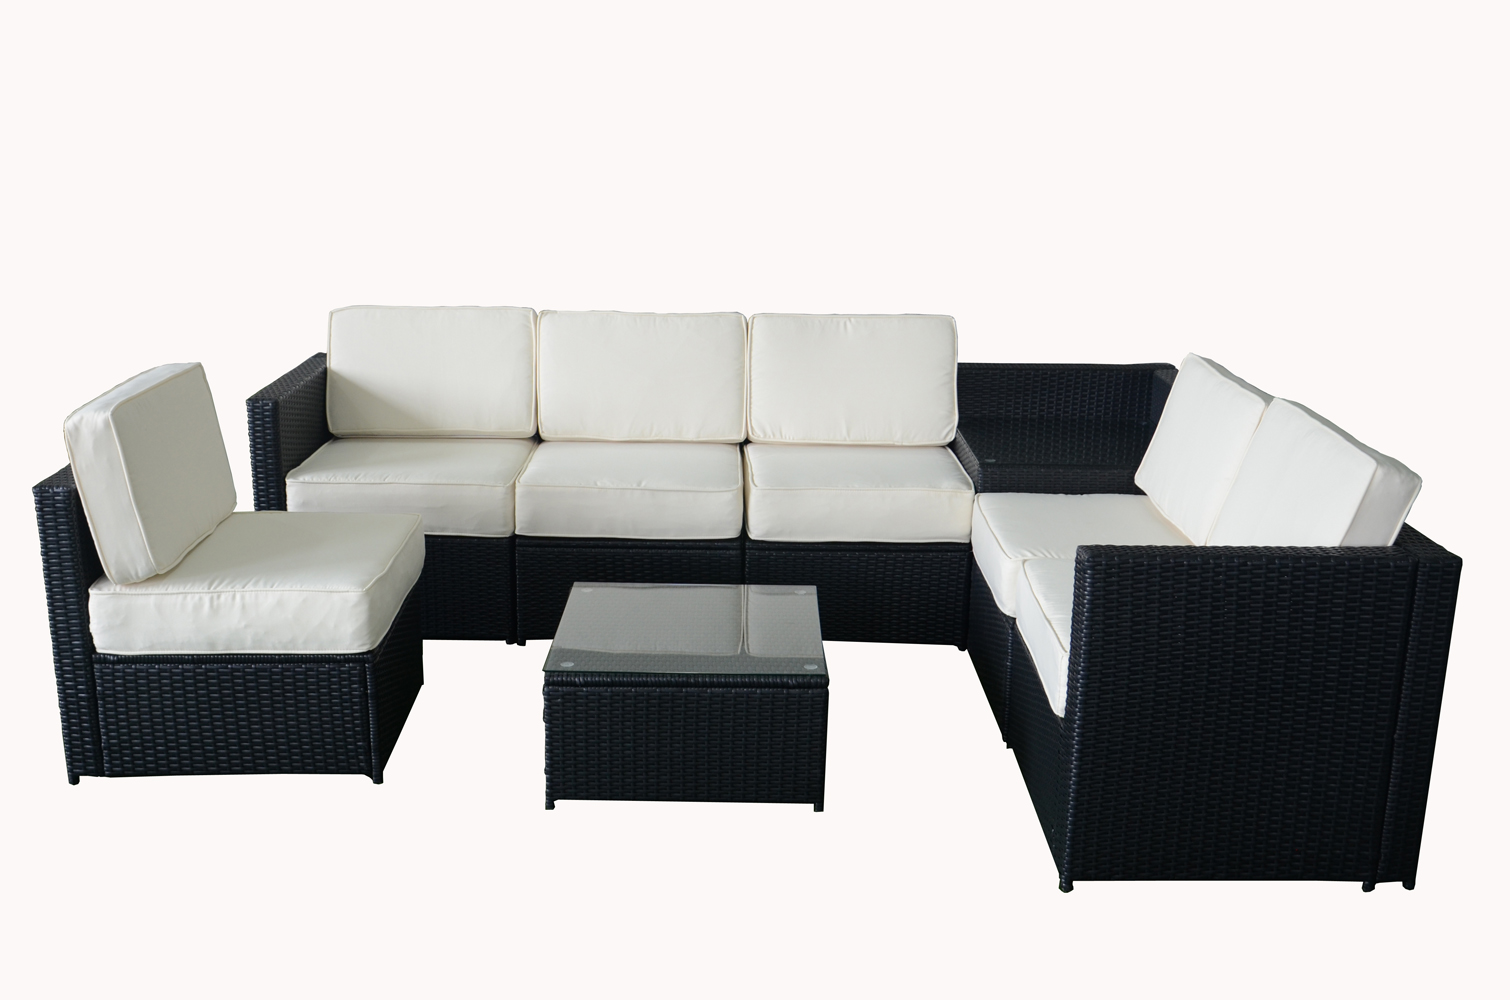 Black Wicker Patio Sectional Black Wicker Sofa Outdoor Sitting Area Transitional Porch Mcombo